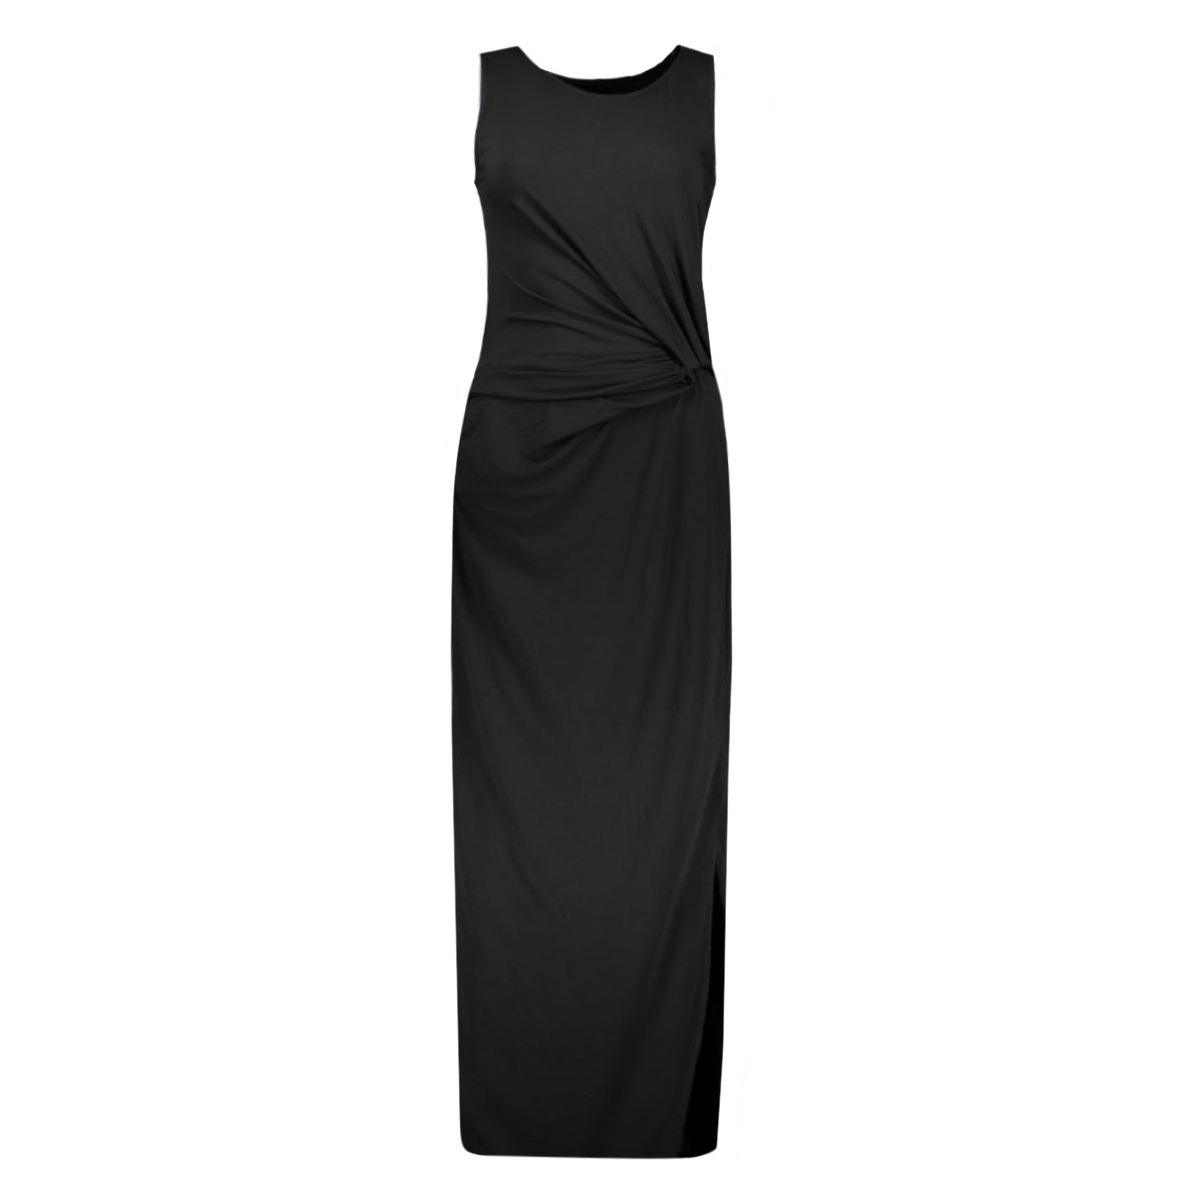 visilia maxi dress 14037685 vila jurk black